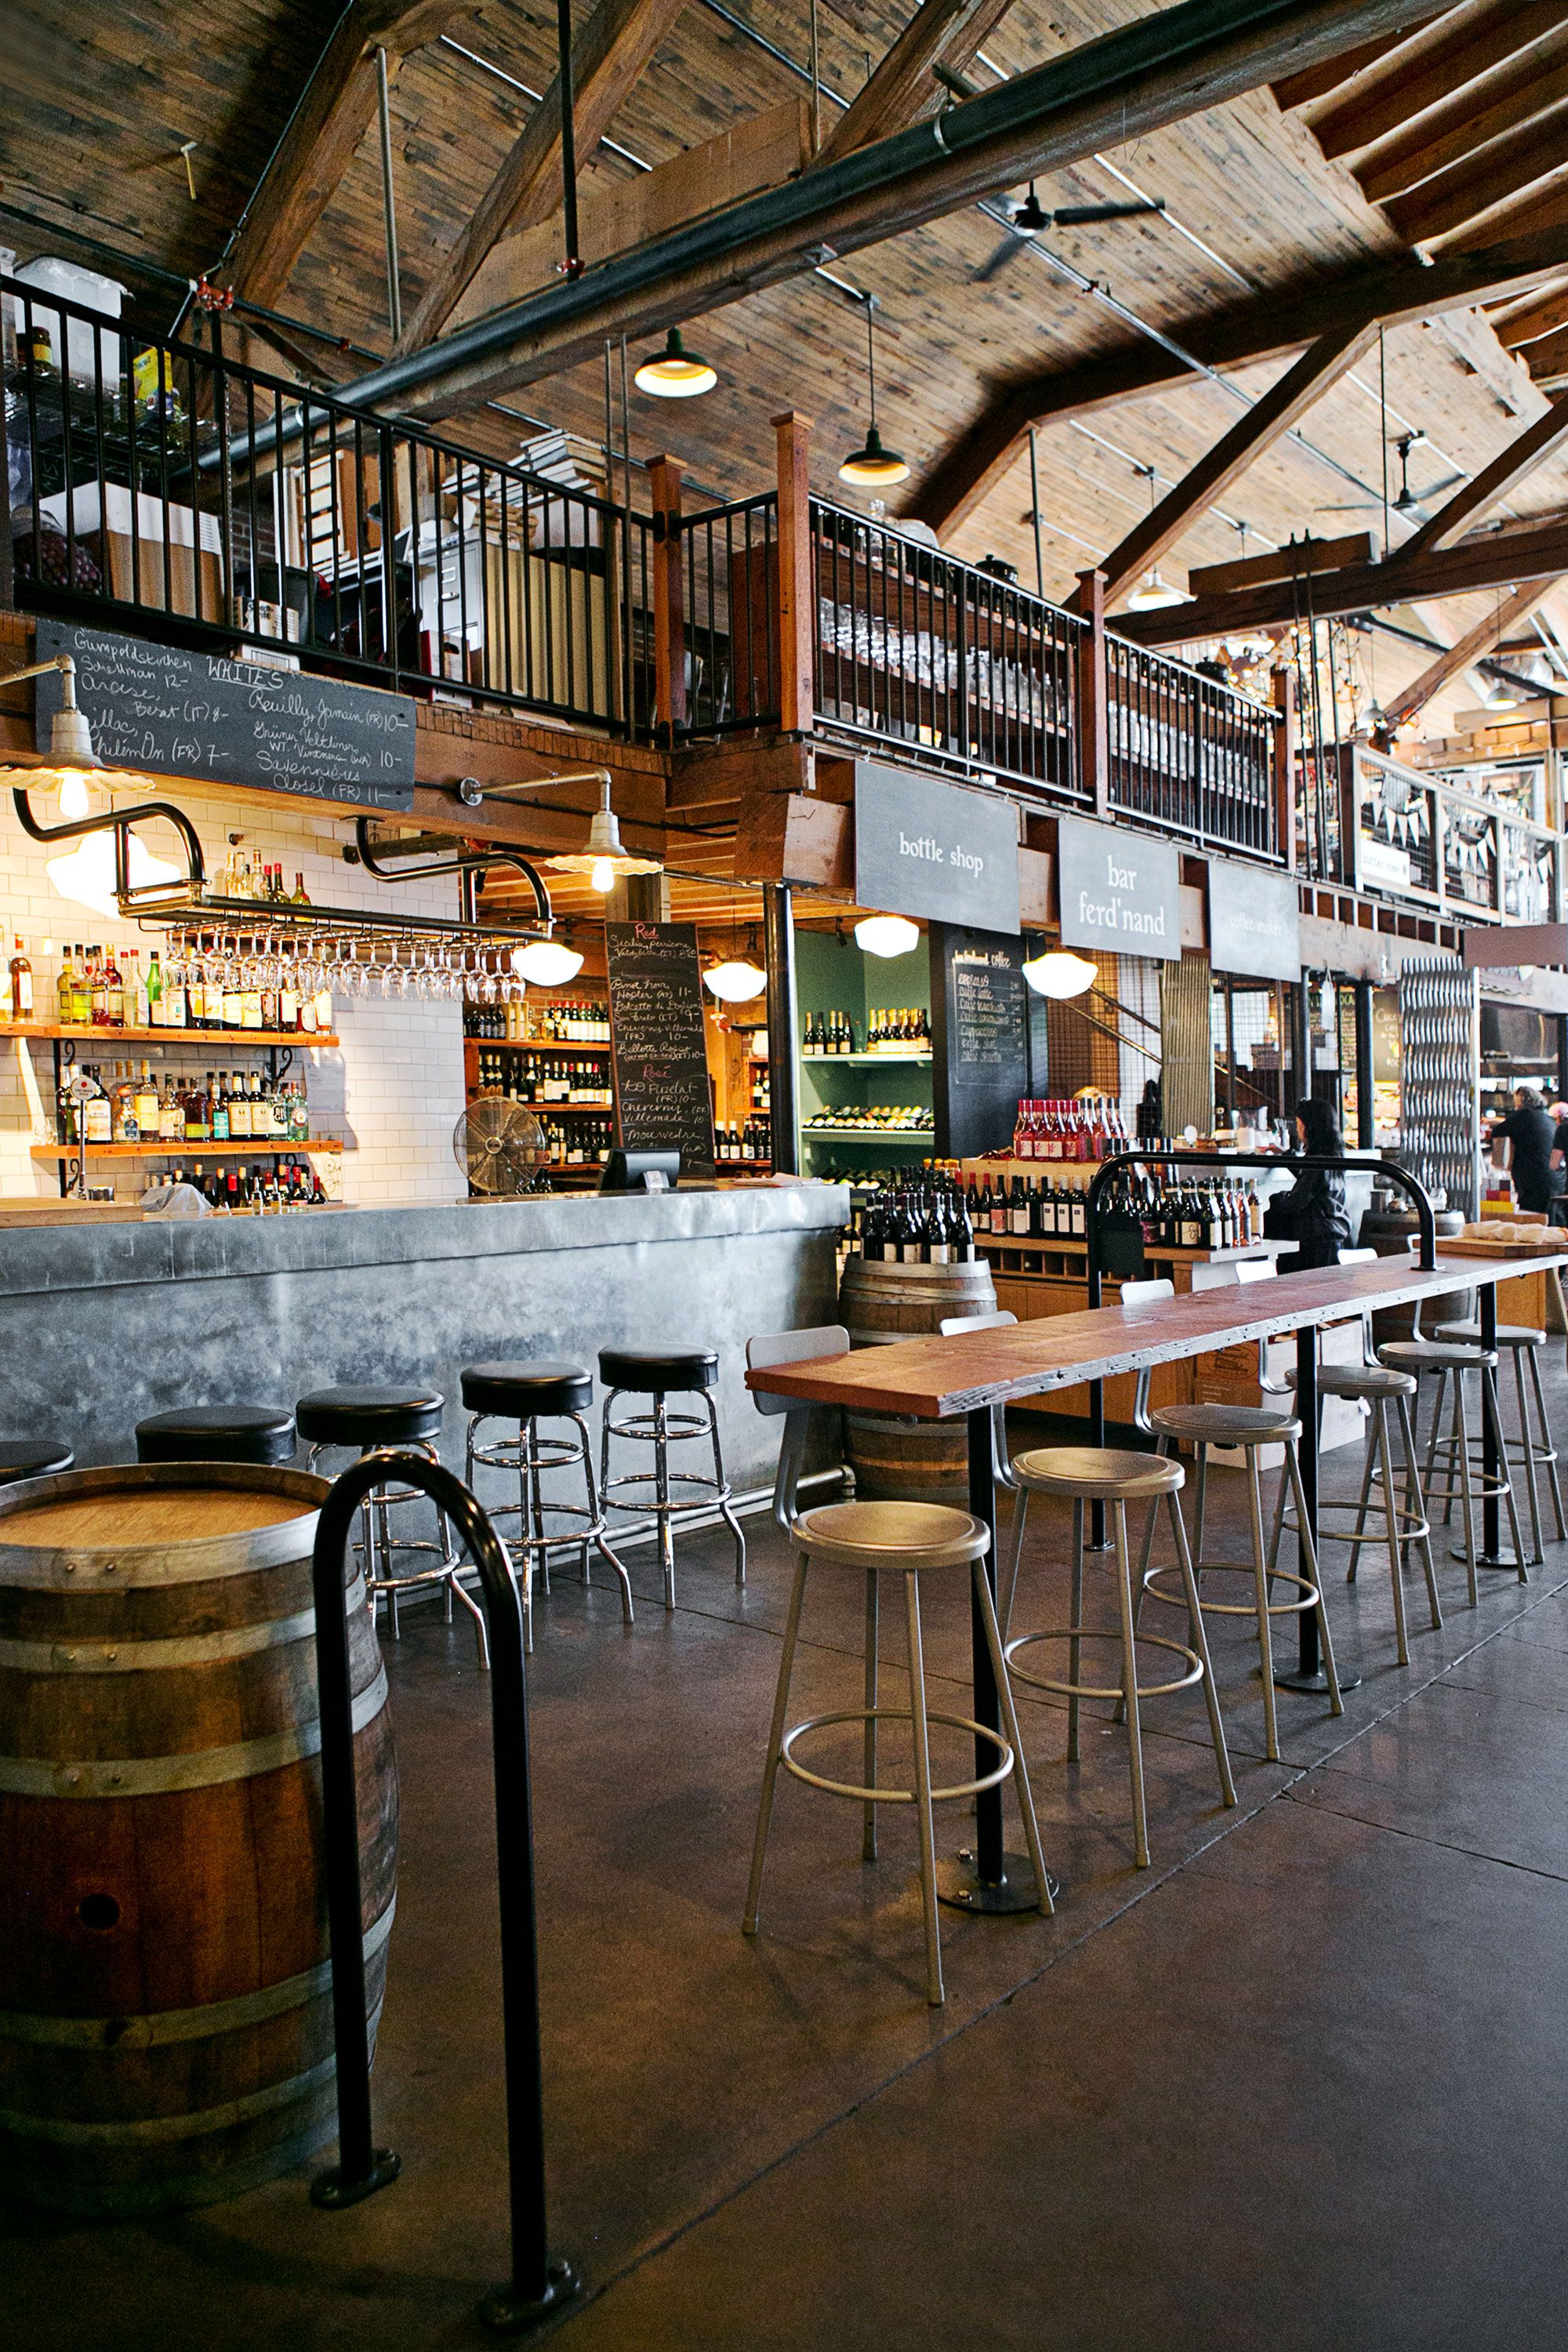 hight resolution of some of the best farm to table fare can be found at melrose market with indie food purveyors a restaurant and the rustic chic bar ferd nand